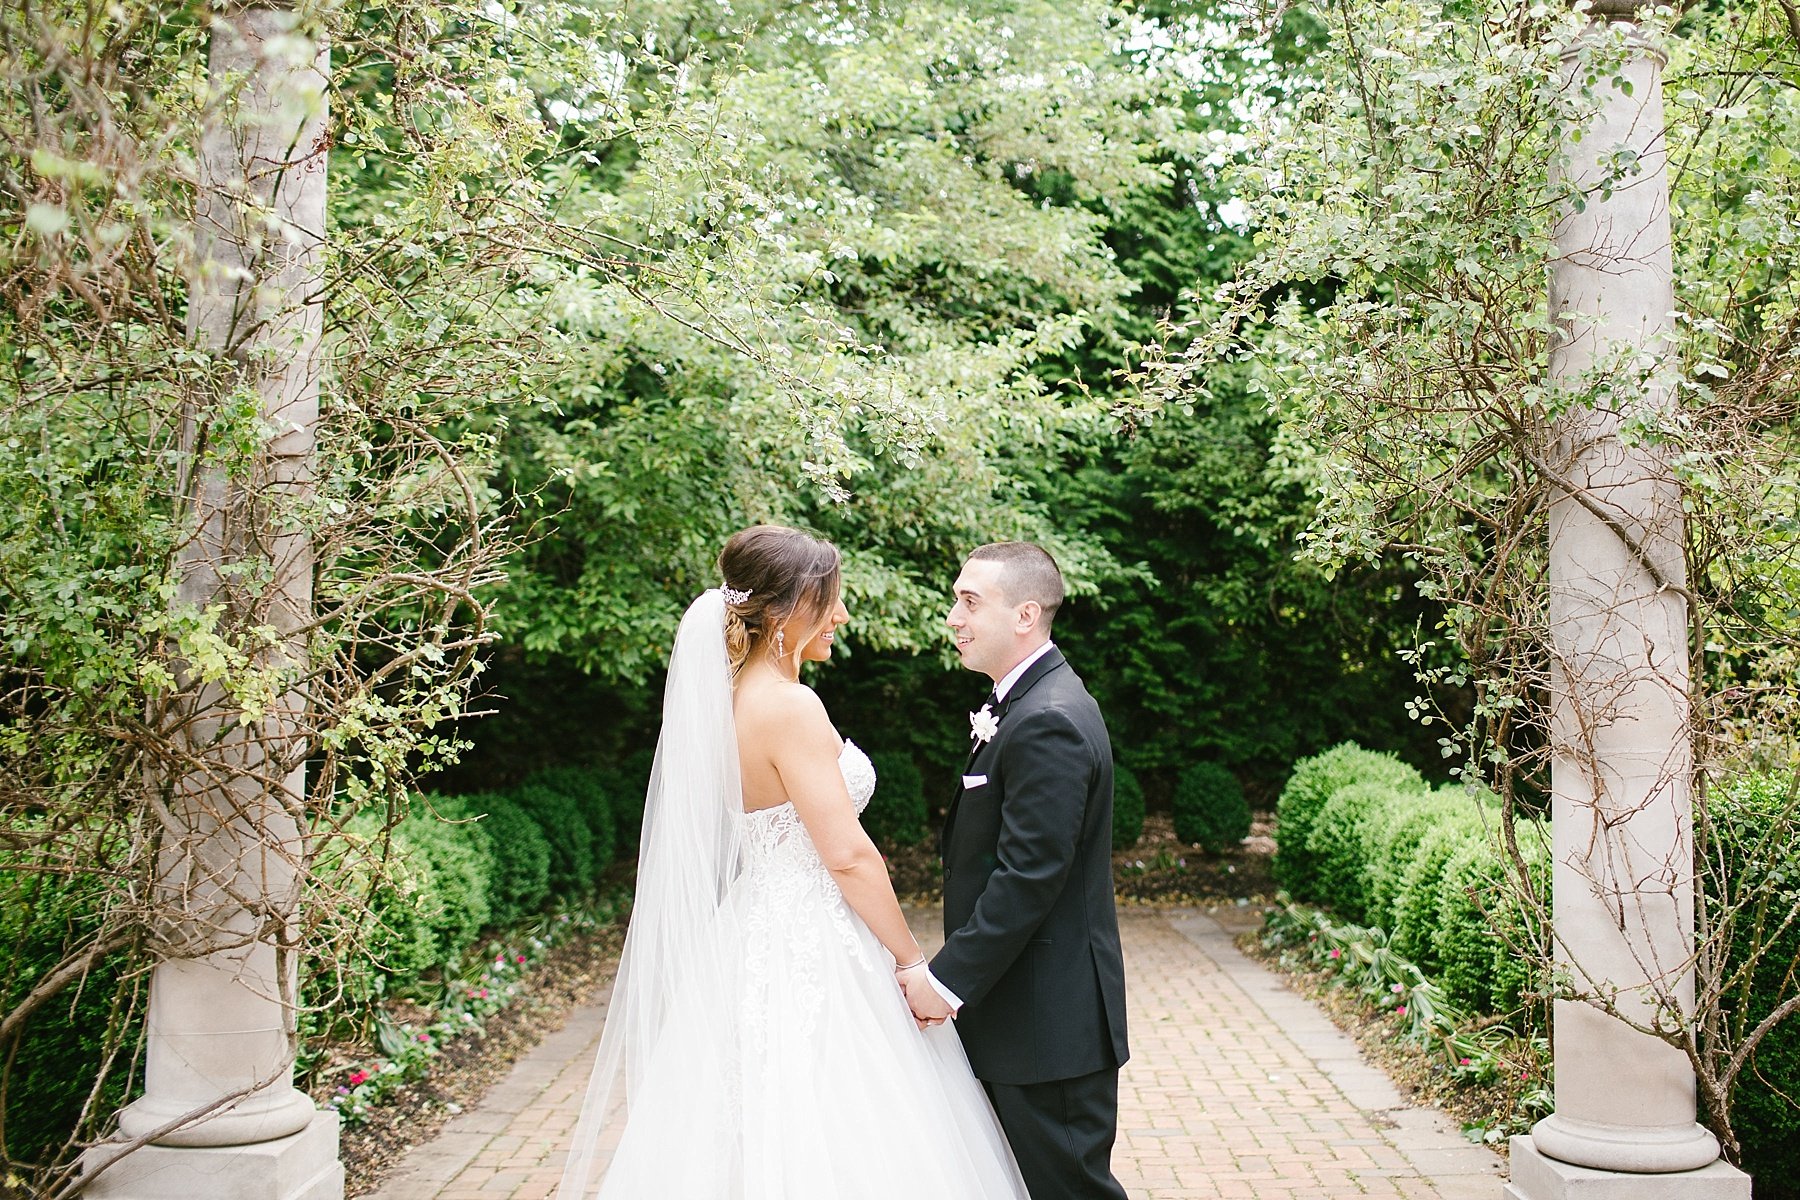 Ashley Mac Photographs | NJ wedding Photographer | The Estate at Florentine Gardens wedding | River Vale NJ wedding day | New Jersey wedding photographer, wedding photography, The Estate at Florentine Gardens, classic wedding day, romantic wedding day